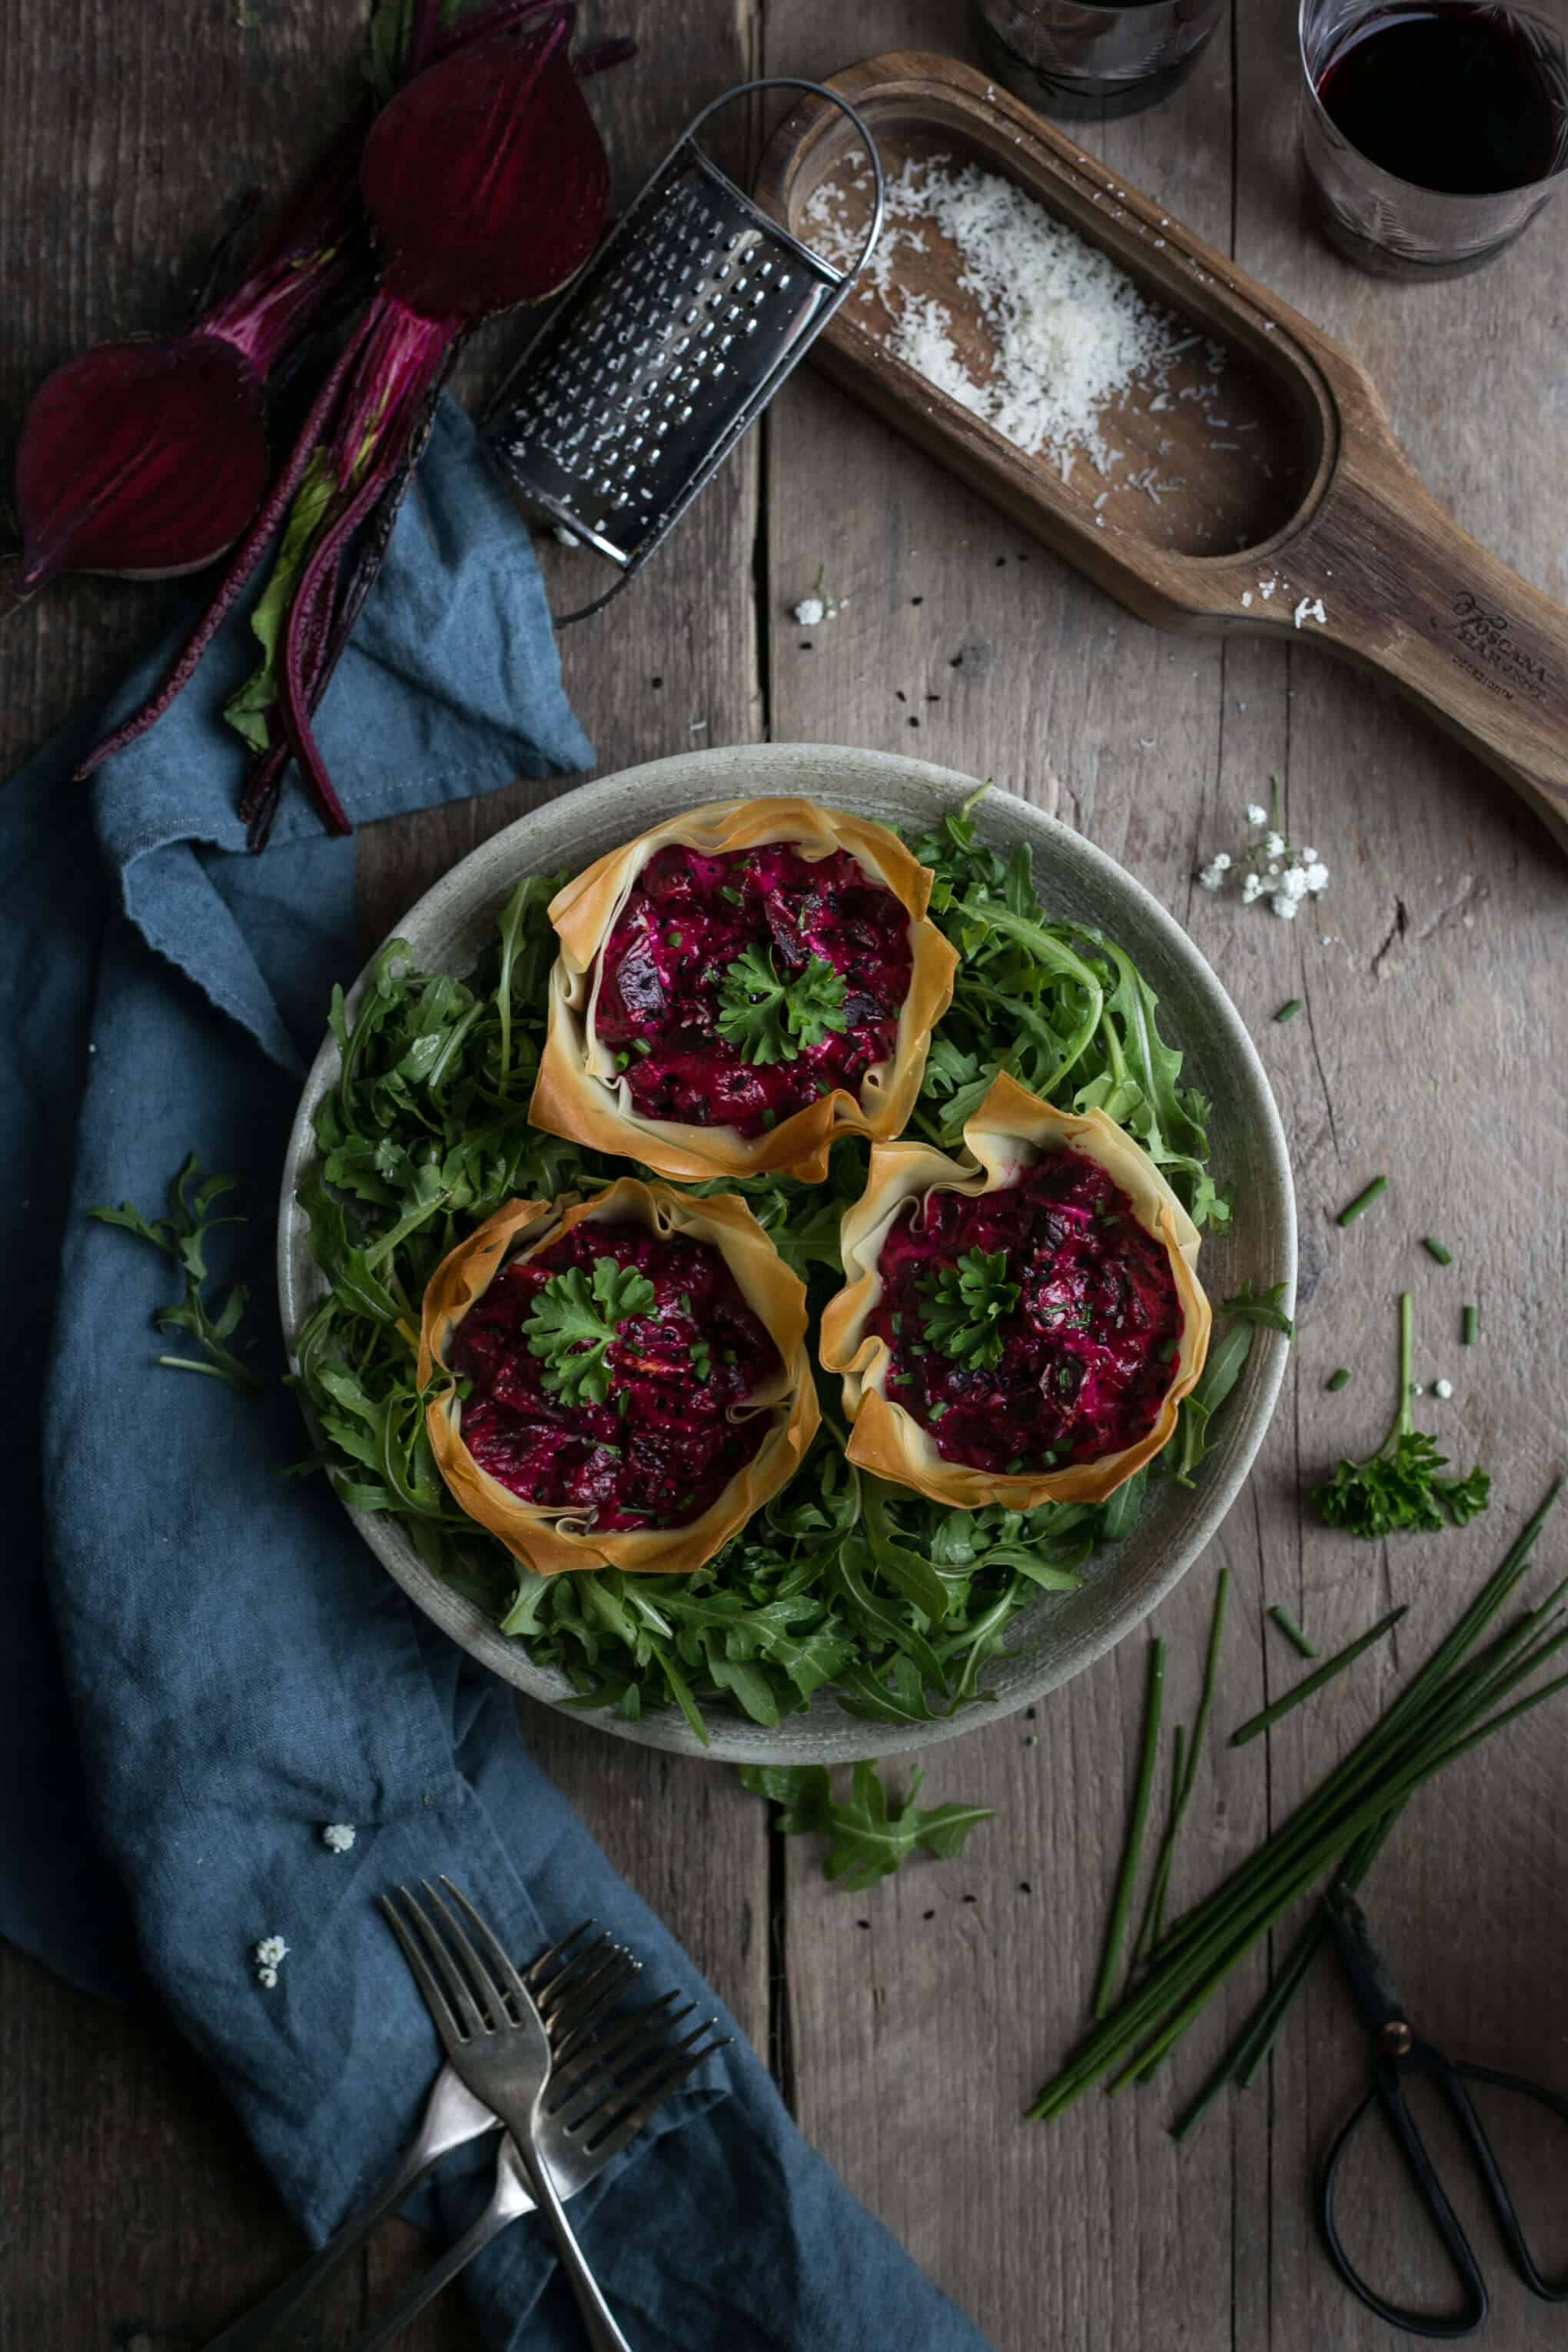 Food Photography Tips For Beginners- Bonus Material! Sign up now and receive a mini- series full of handy tips! | via @annabanana.co